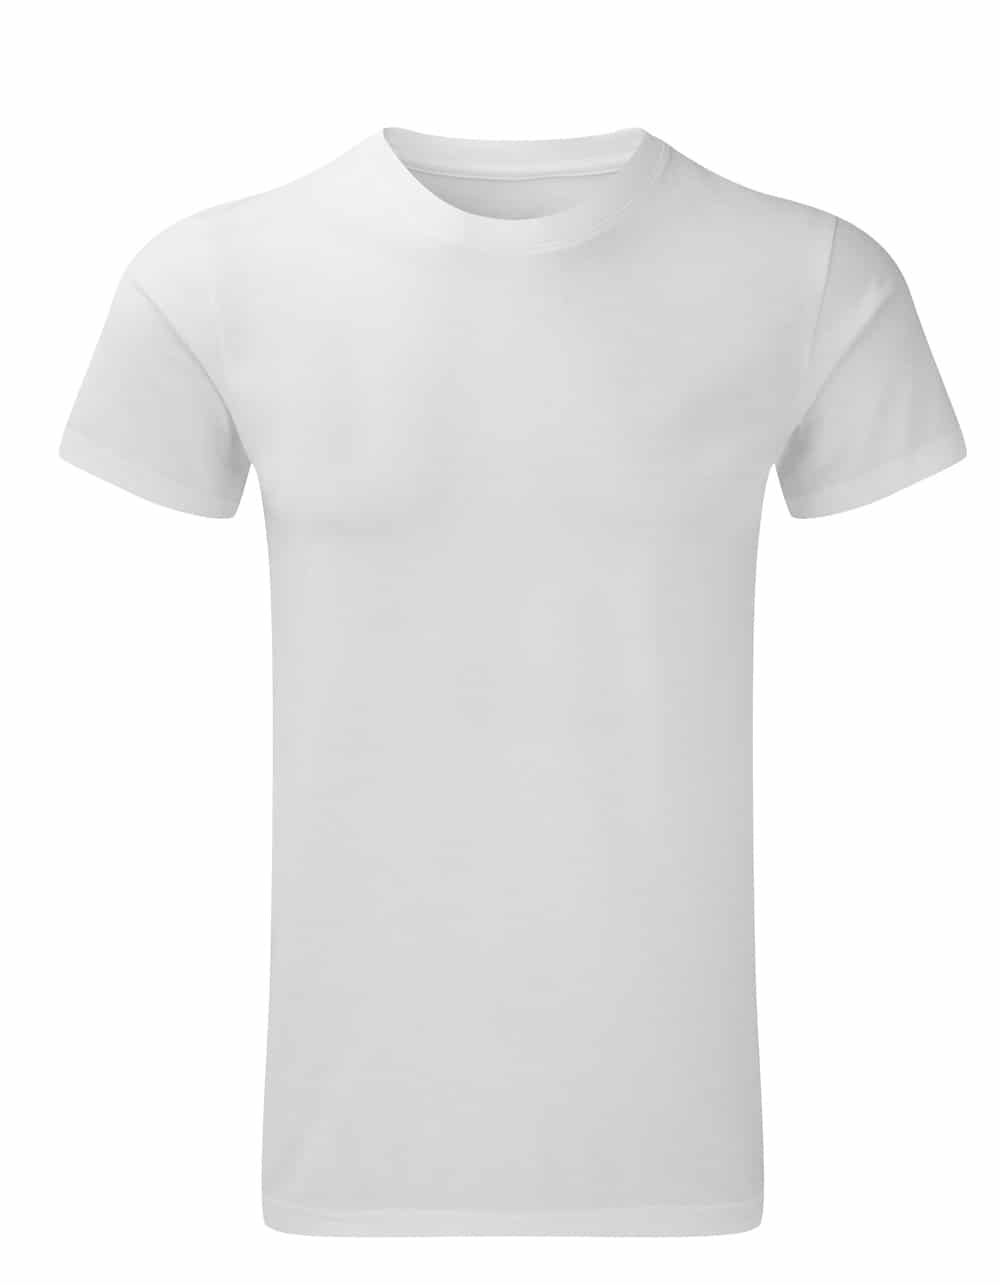 T-ACTIVE-H-B-XXL__IMG__HD__T-Shirt20Polyester20Homme20Taille20XXL__1__1.jpg